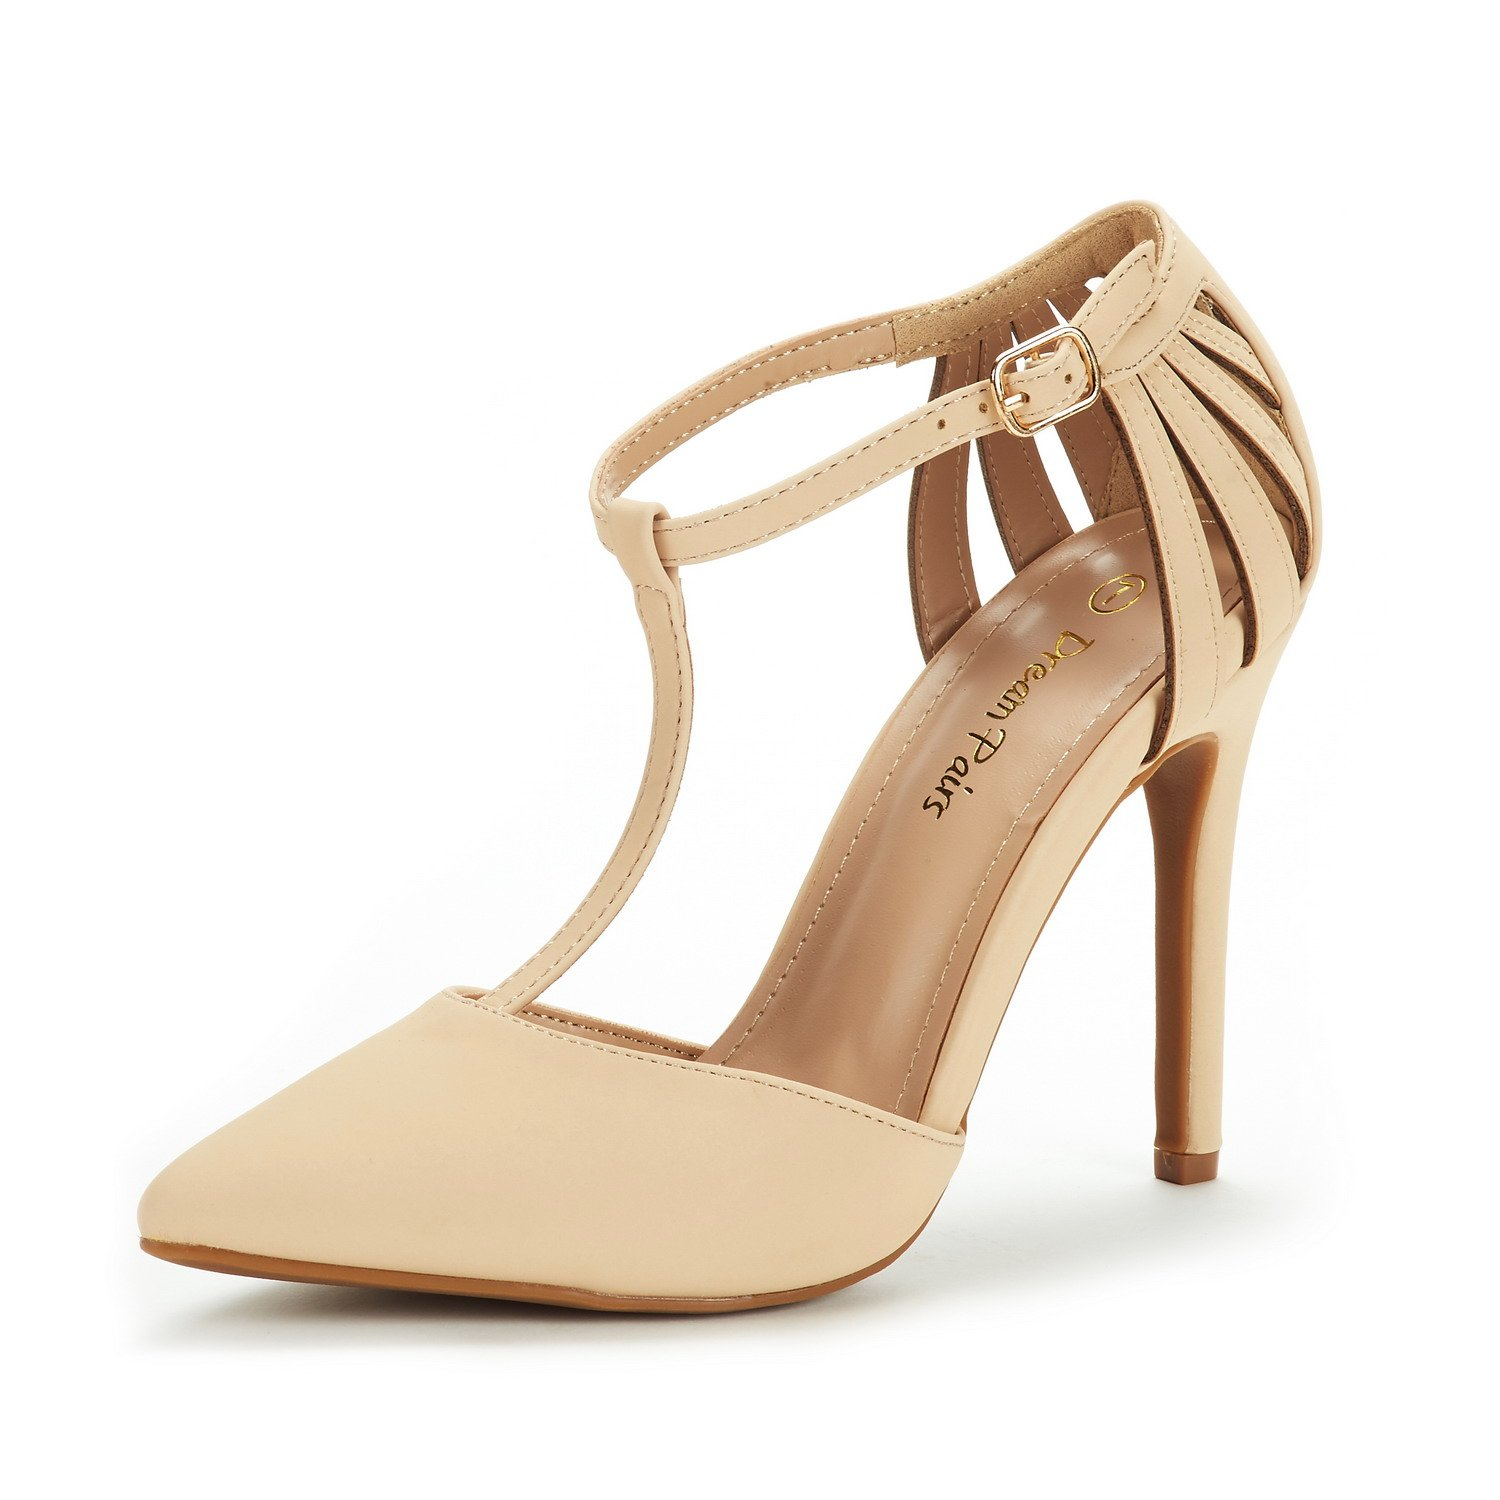 DREAM PAIRS Women's Oppointed-Mary Nude Nubuck Fashion Dress High Heel Pointed Toe Wedding Pumps Shoes Size 8 M US